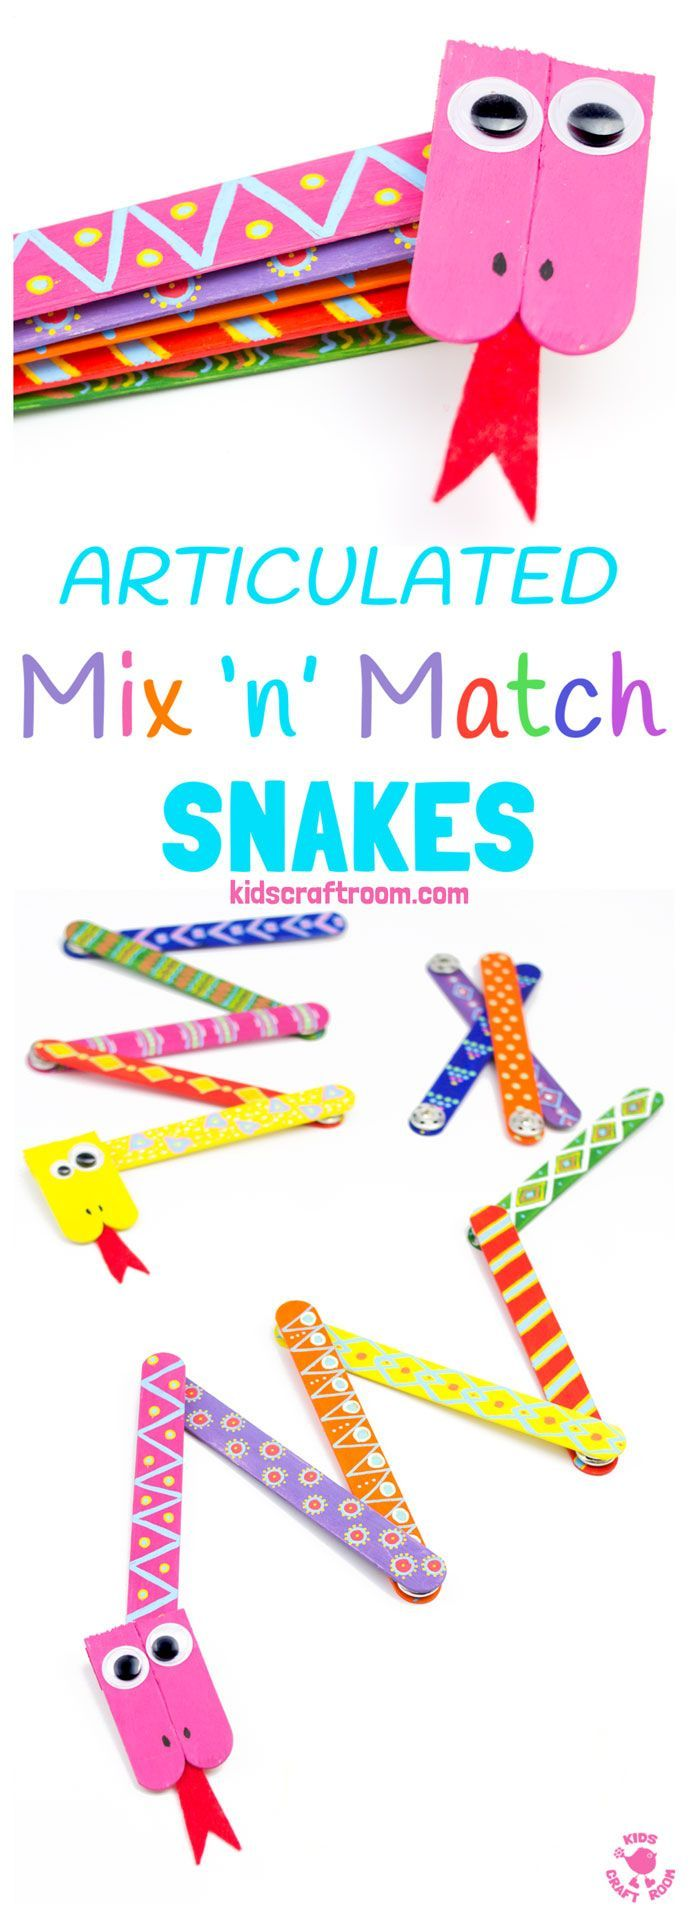 SNAKE CRAFT: This Mix 'N Match Articulated Snake Craft is such fun and twists, turns and slithers like a real one! With bright and colourful interchangeable body parts kids can make a unique snake toy every time they play!